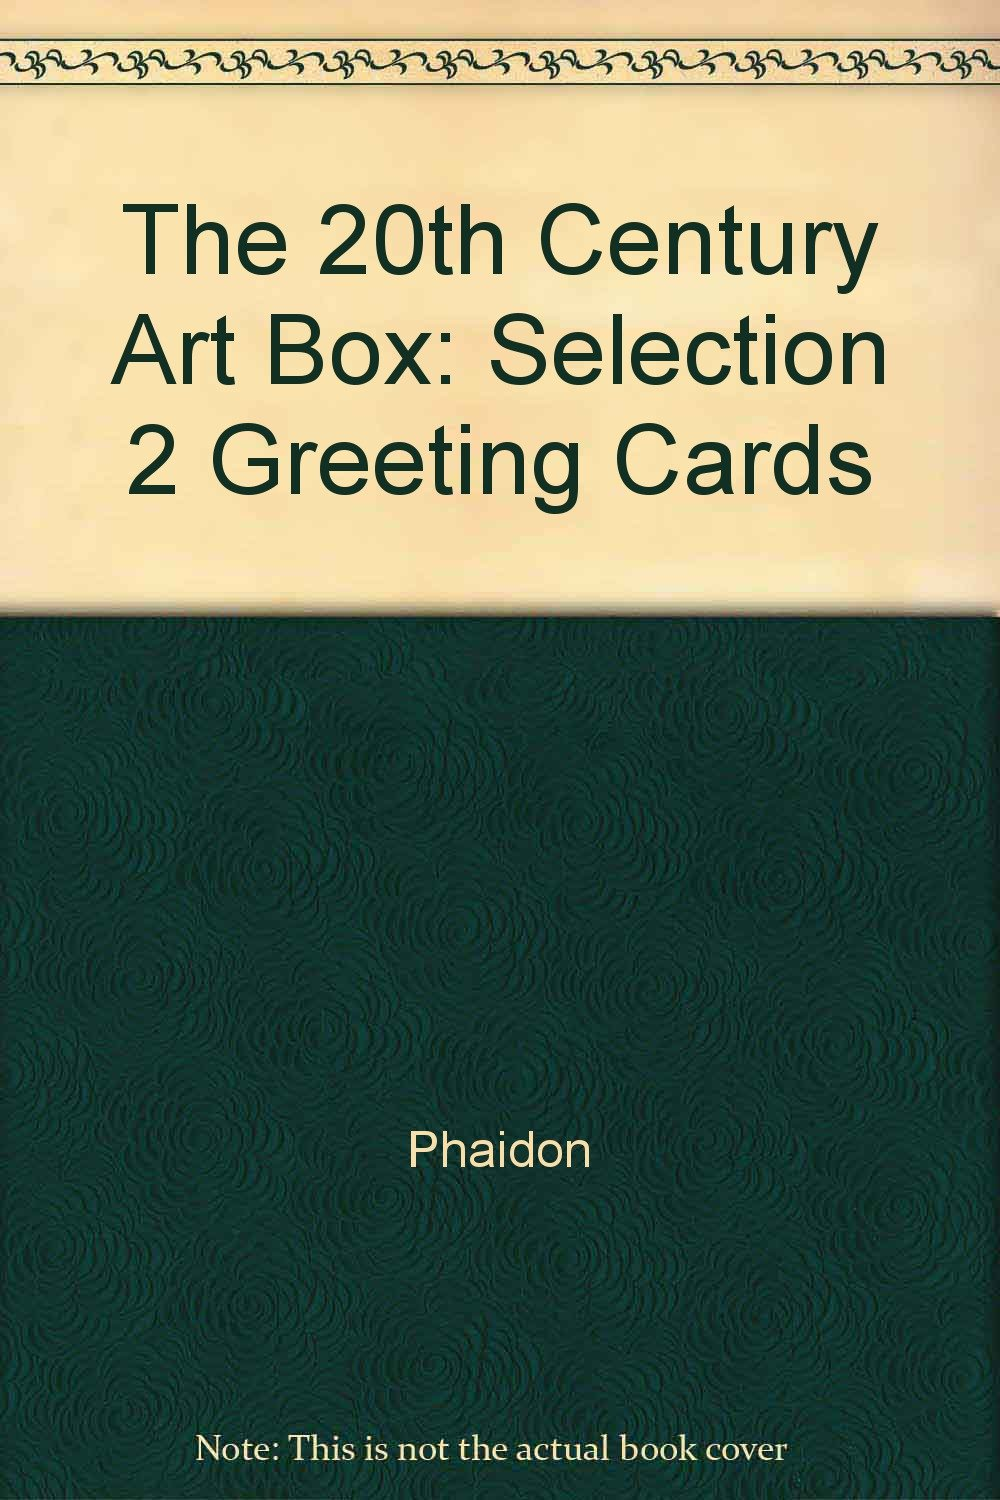 the 20th century art box box 2 art box